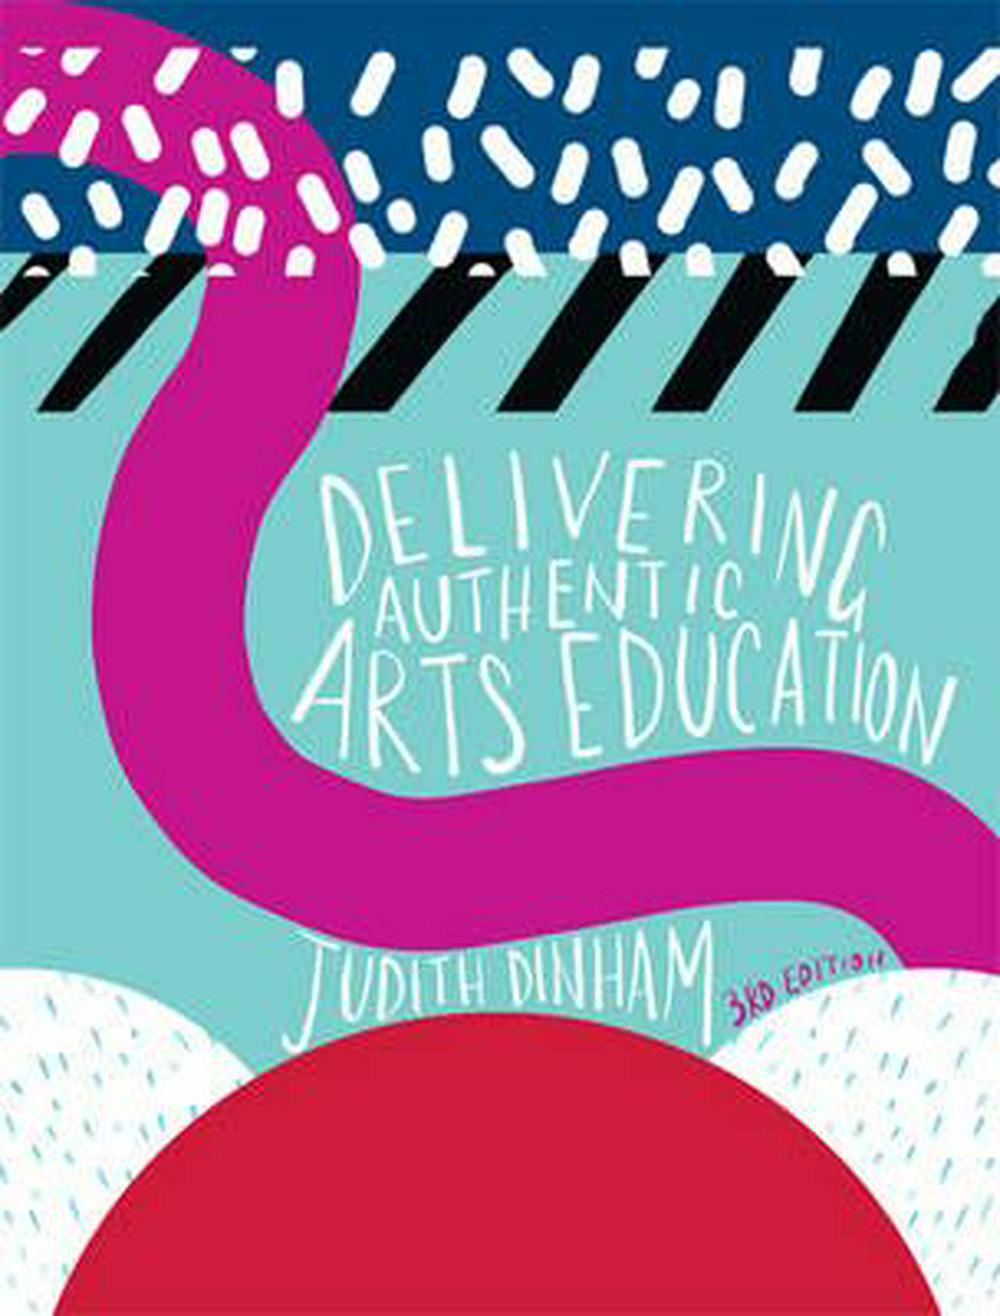 Delivering Authentic Arts Education with Student Resource Access 12 Months by Judith Dinham, ISBN: 9780170368827